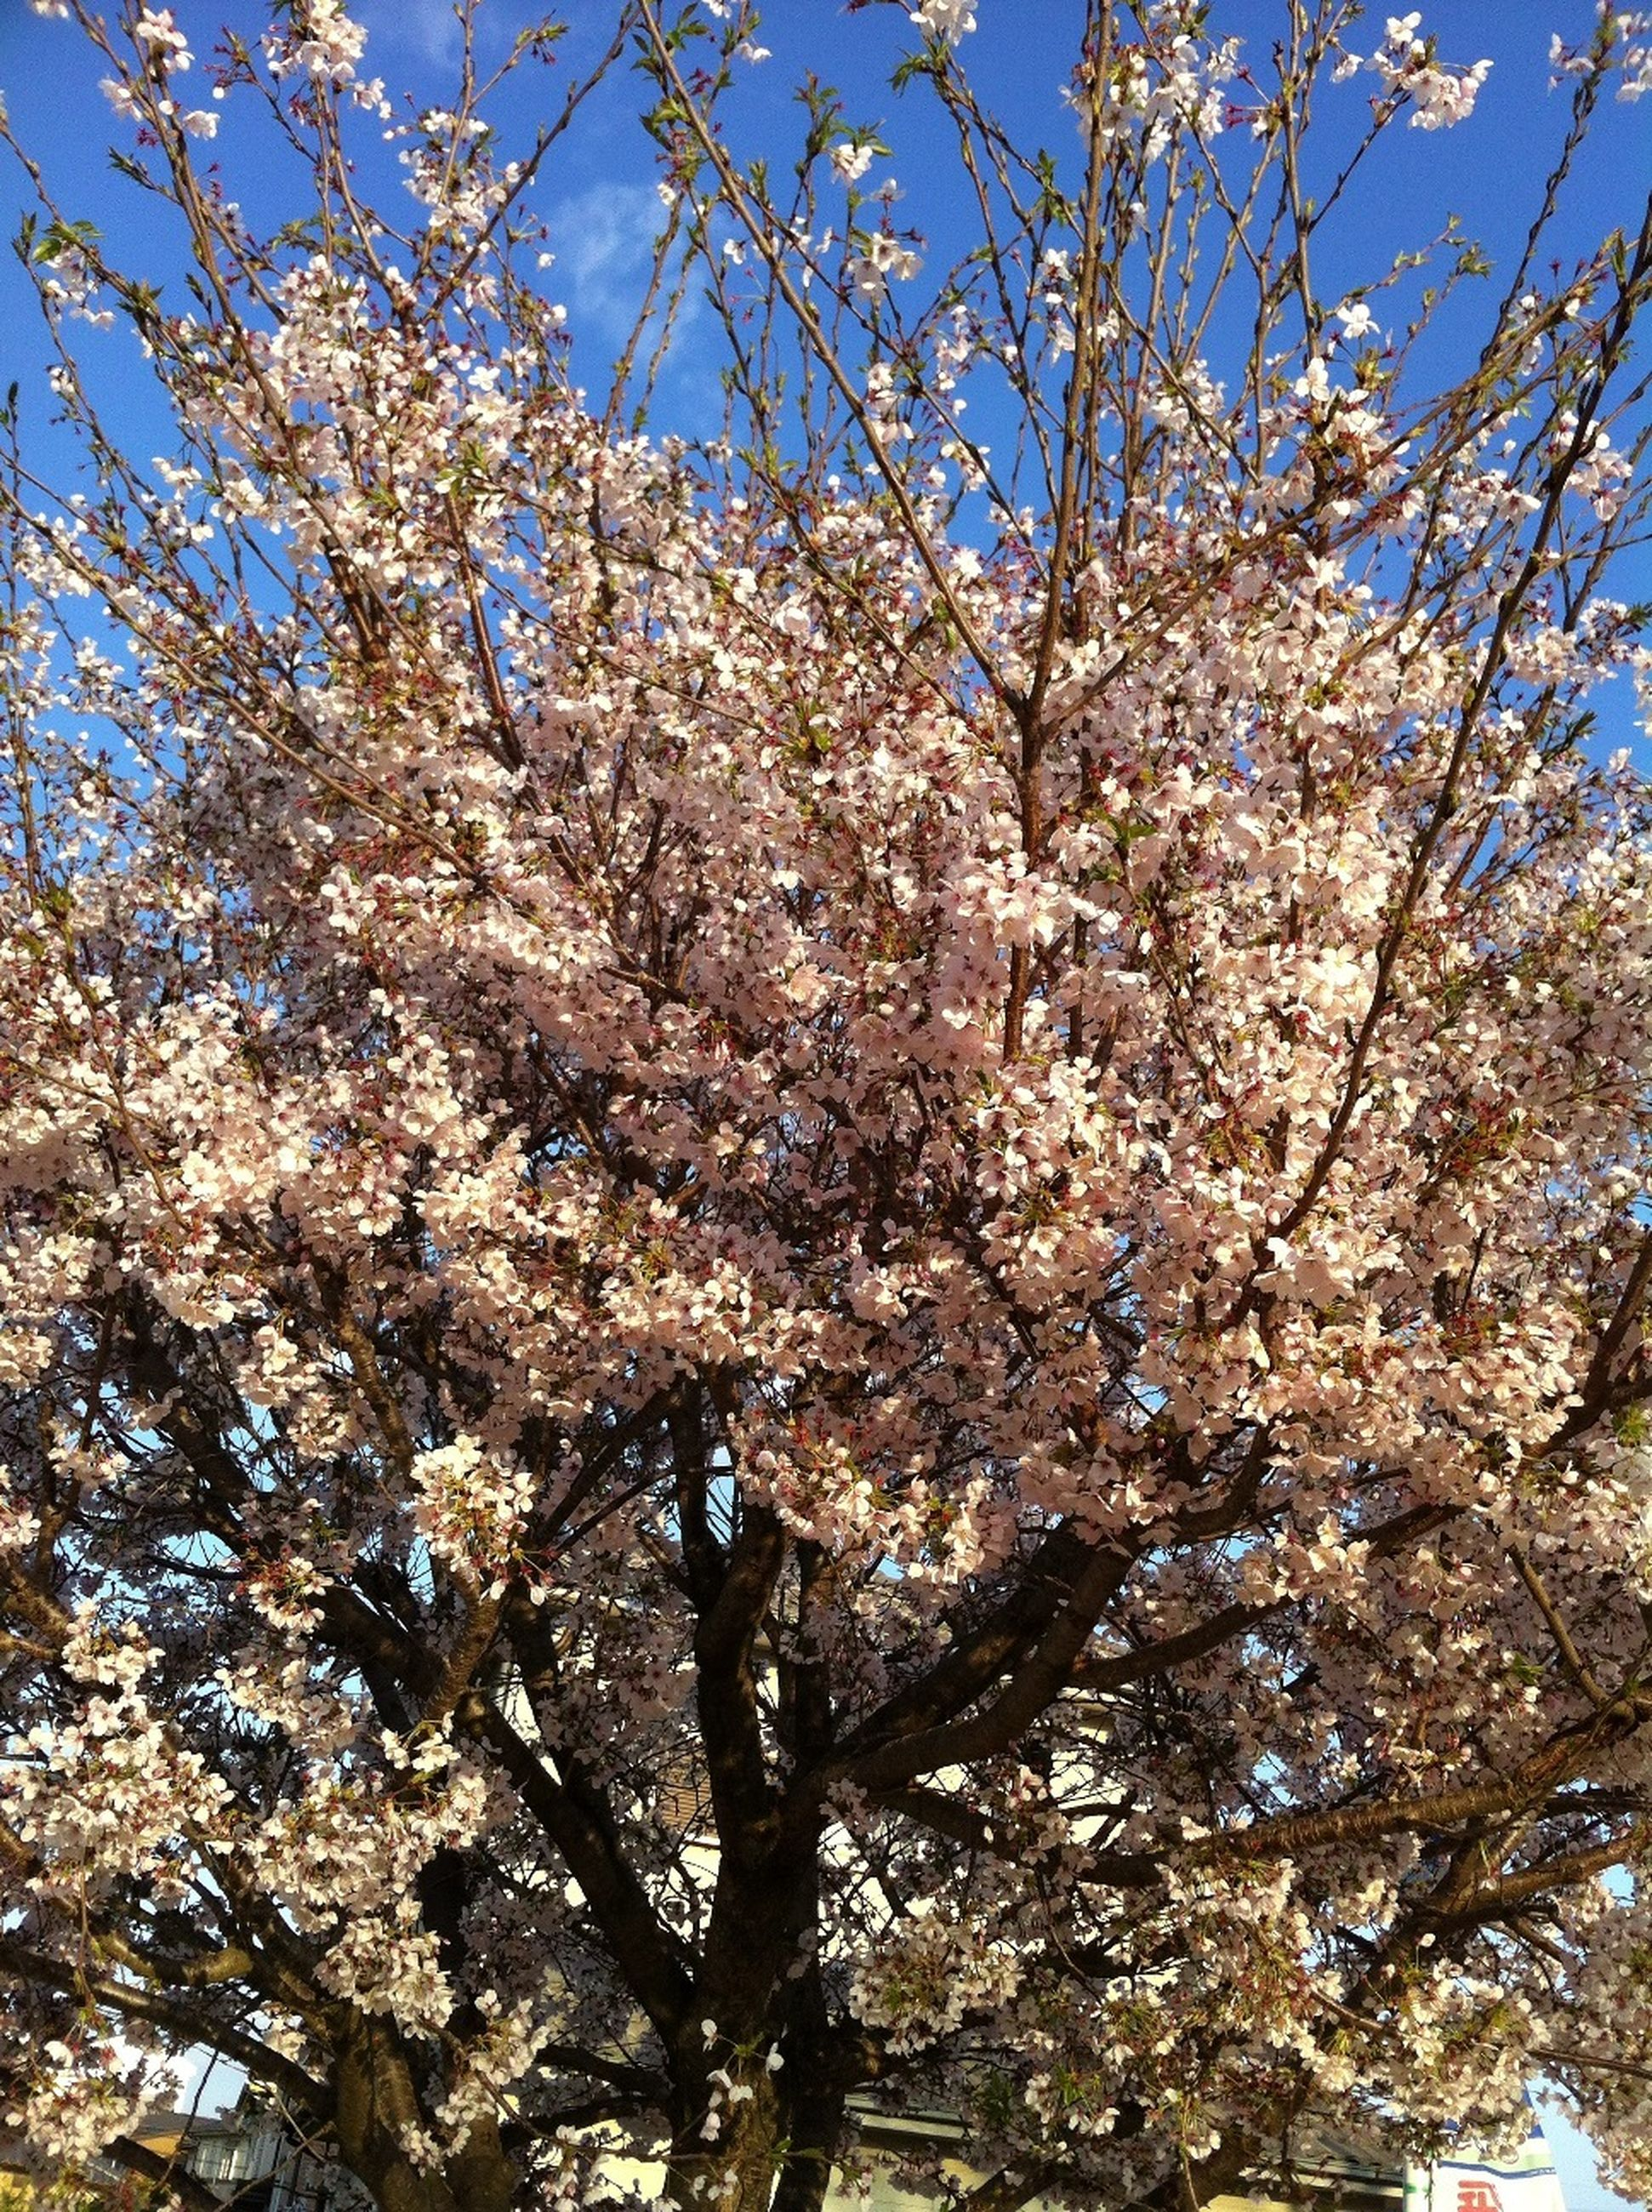 tree, branch, flower, low angle view, cherry blossom, growth, cherry tree, freshness, nature, beauty in nature, blossom, fragility, springtime, fruit tree, sky, clear sky, in bloom, day, sunlight, outdoors